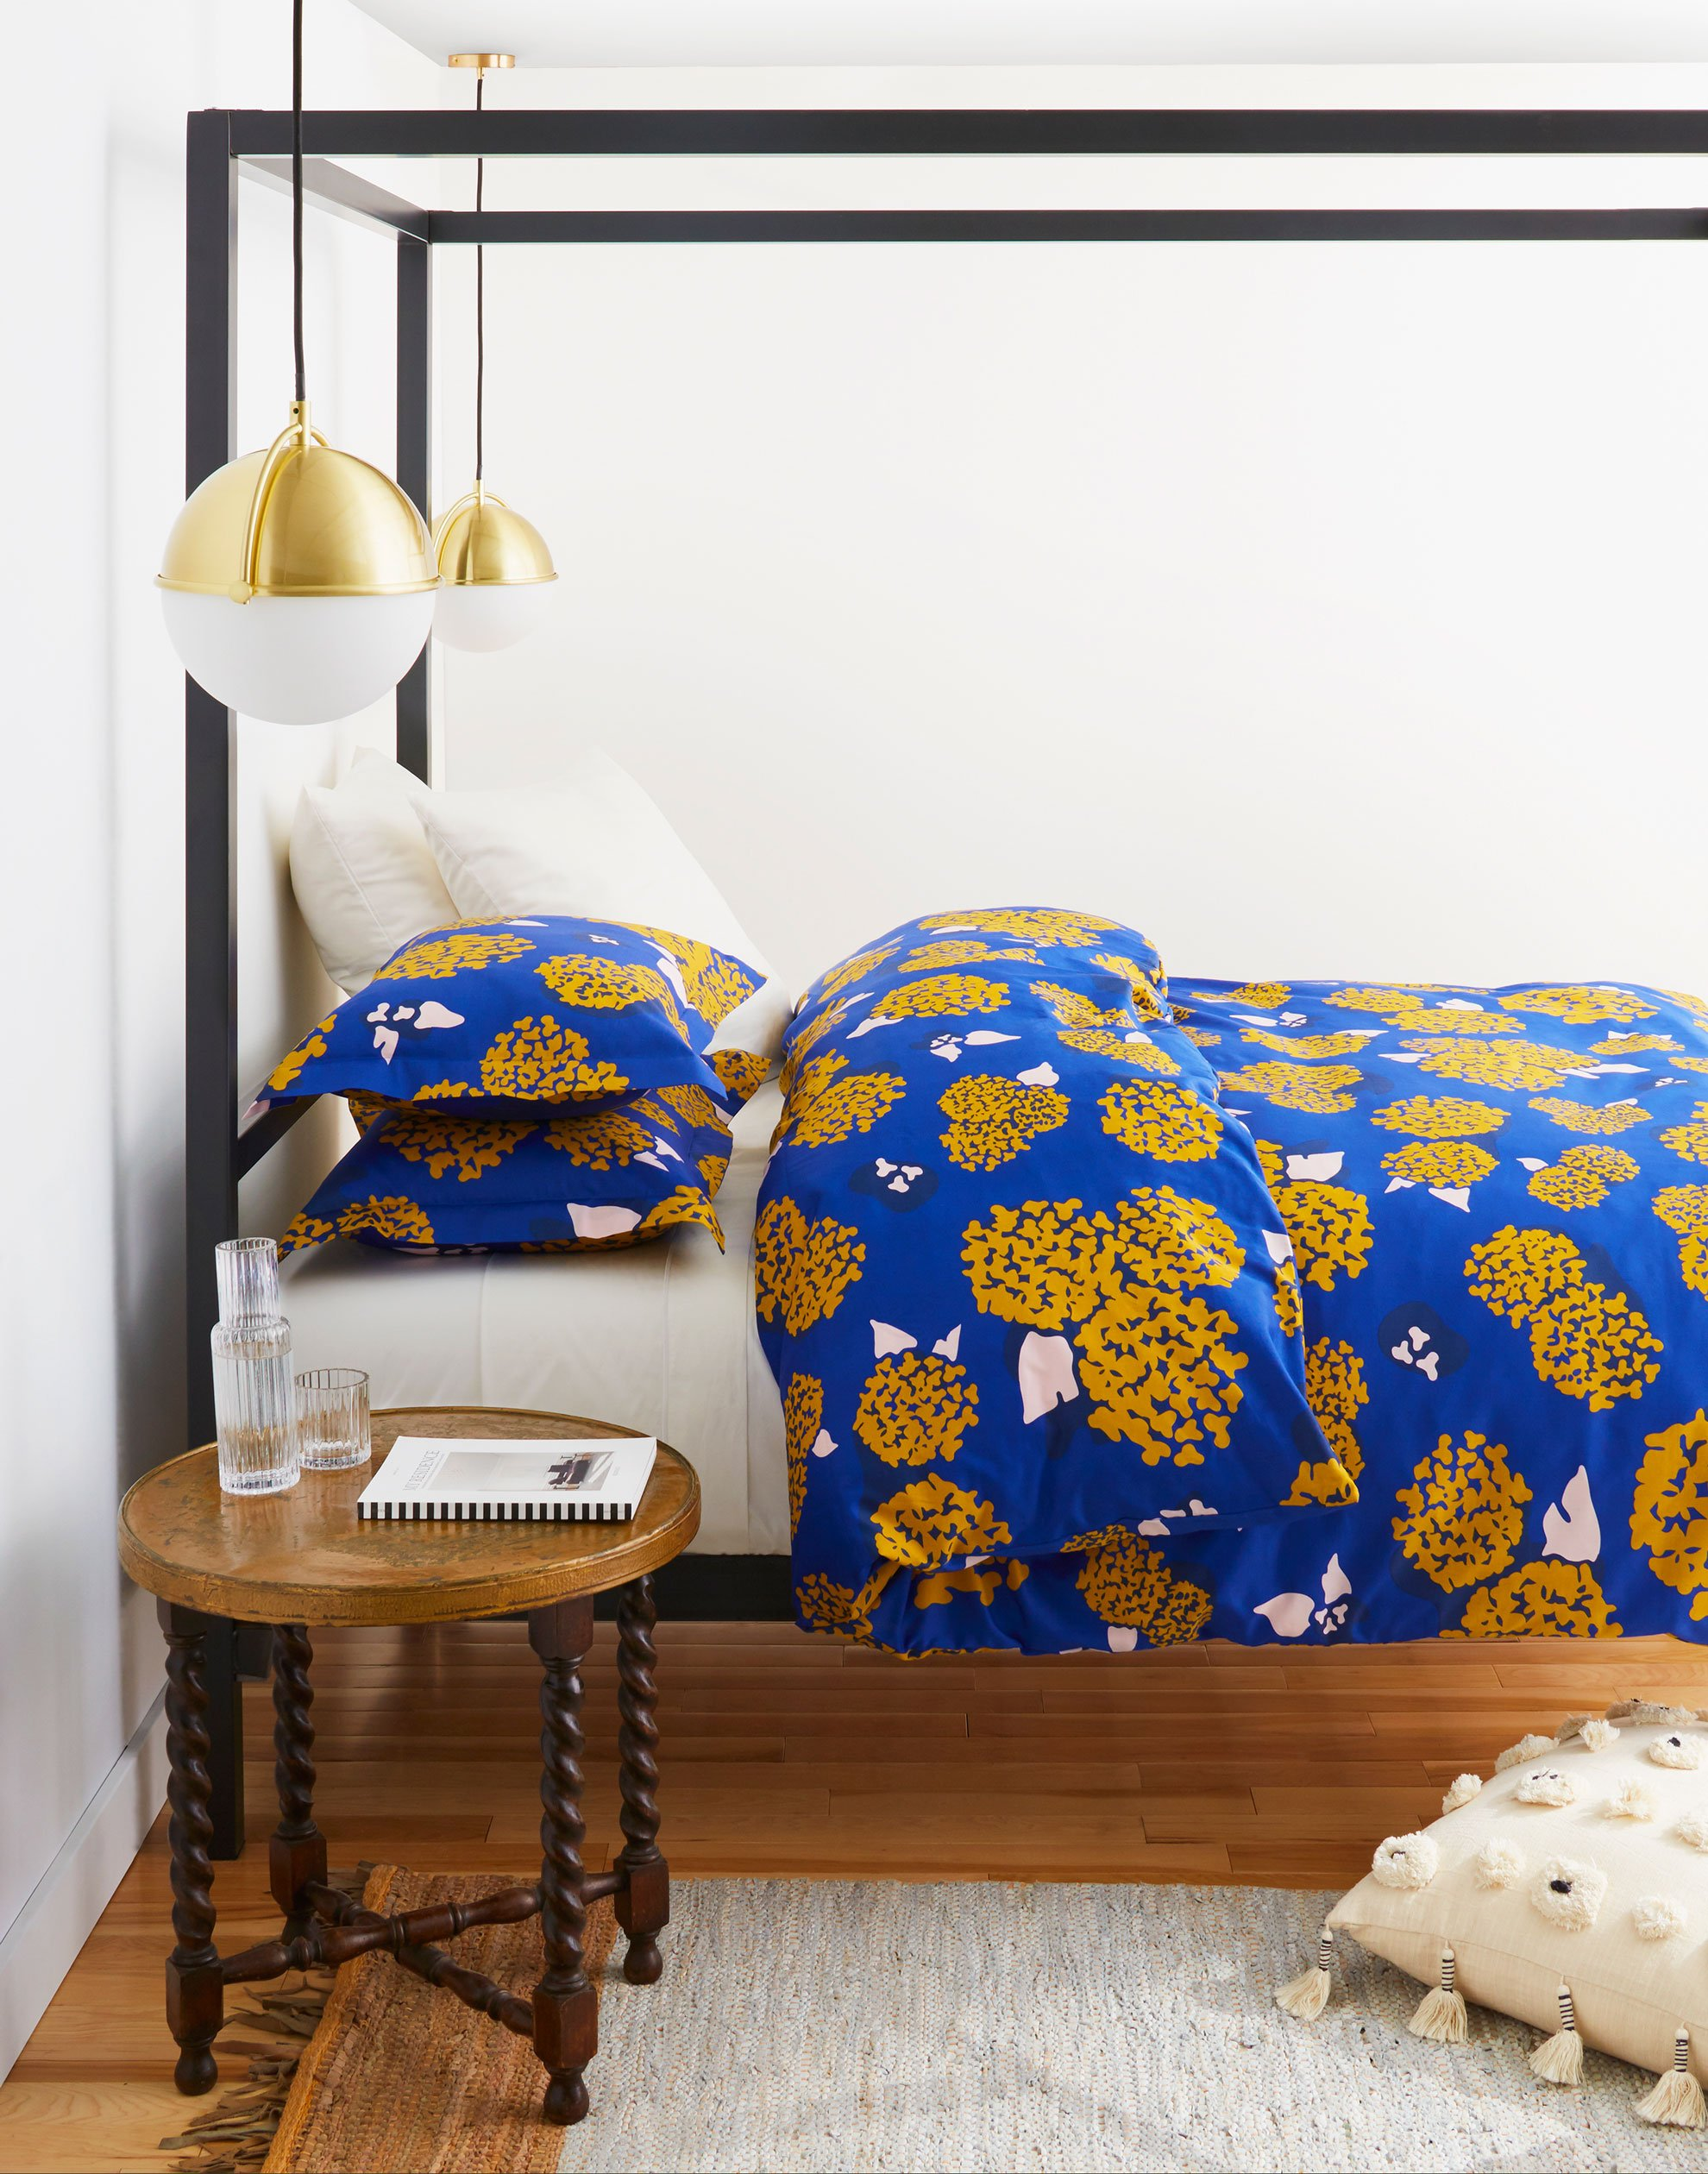 This bold hydrangea bed set is from Hygge and West